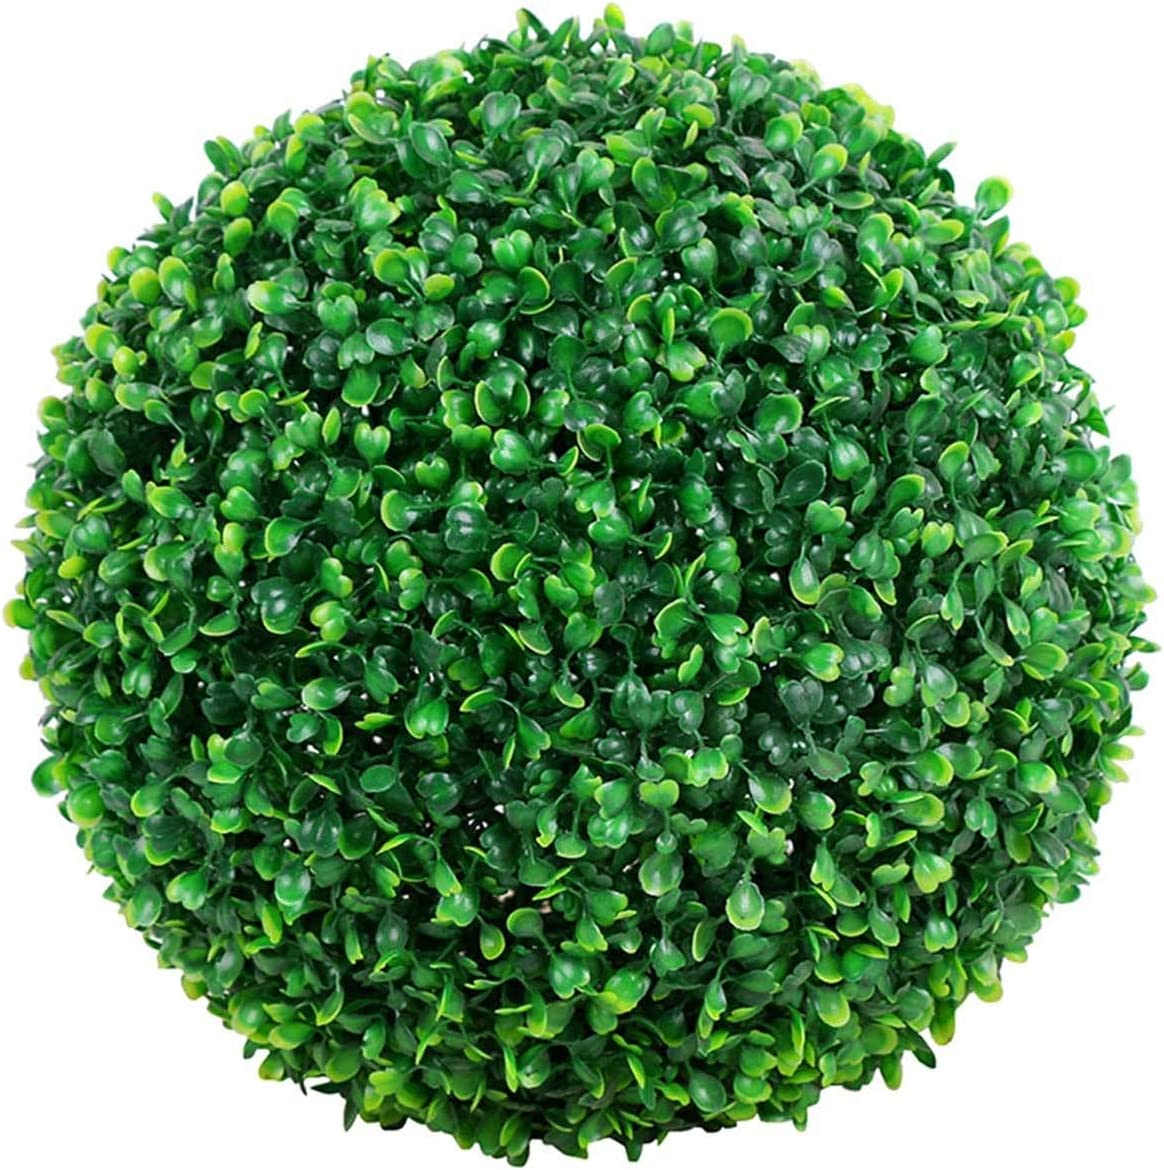 YHMT Best Artificial Grass Boxwood Trimmed Artific Balls Sale Max 73% OFF special price